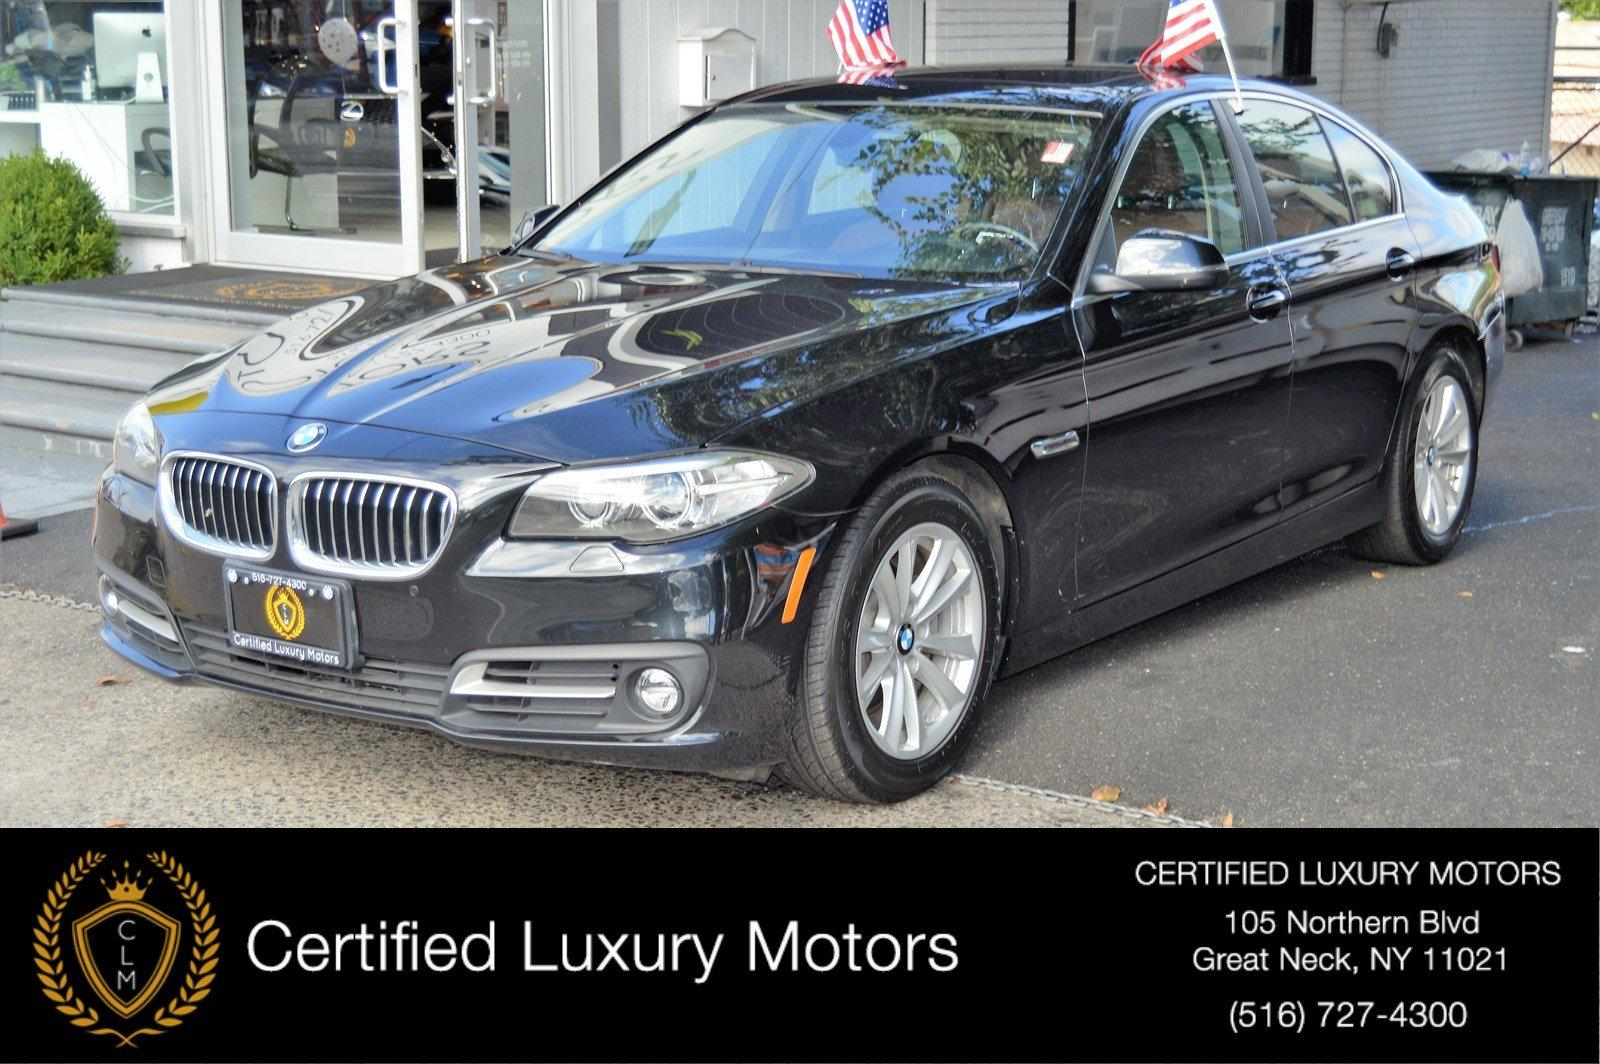 2015 Bmw 5 Series 528i Xdrive Stock 3443 For Sale Near Great Neck Used